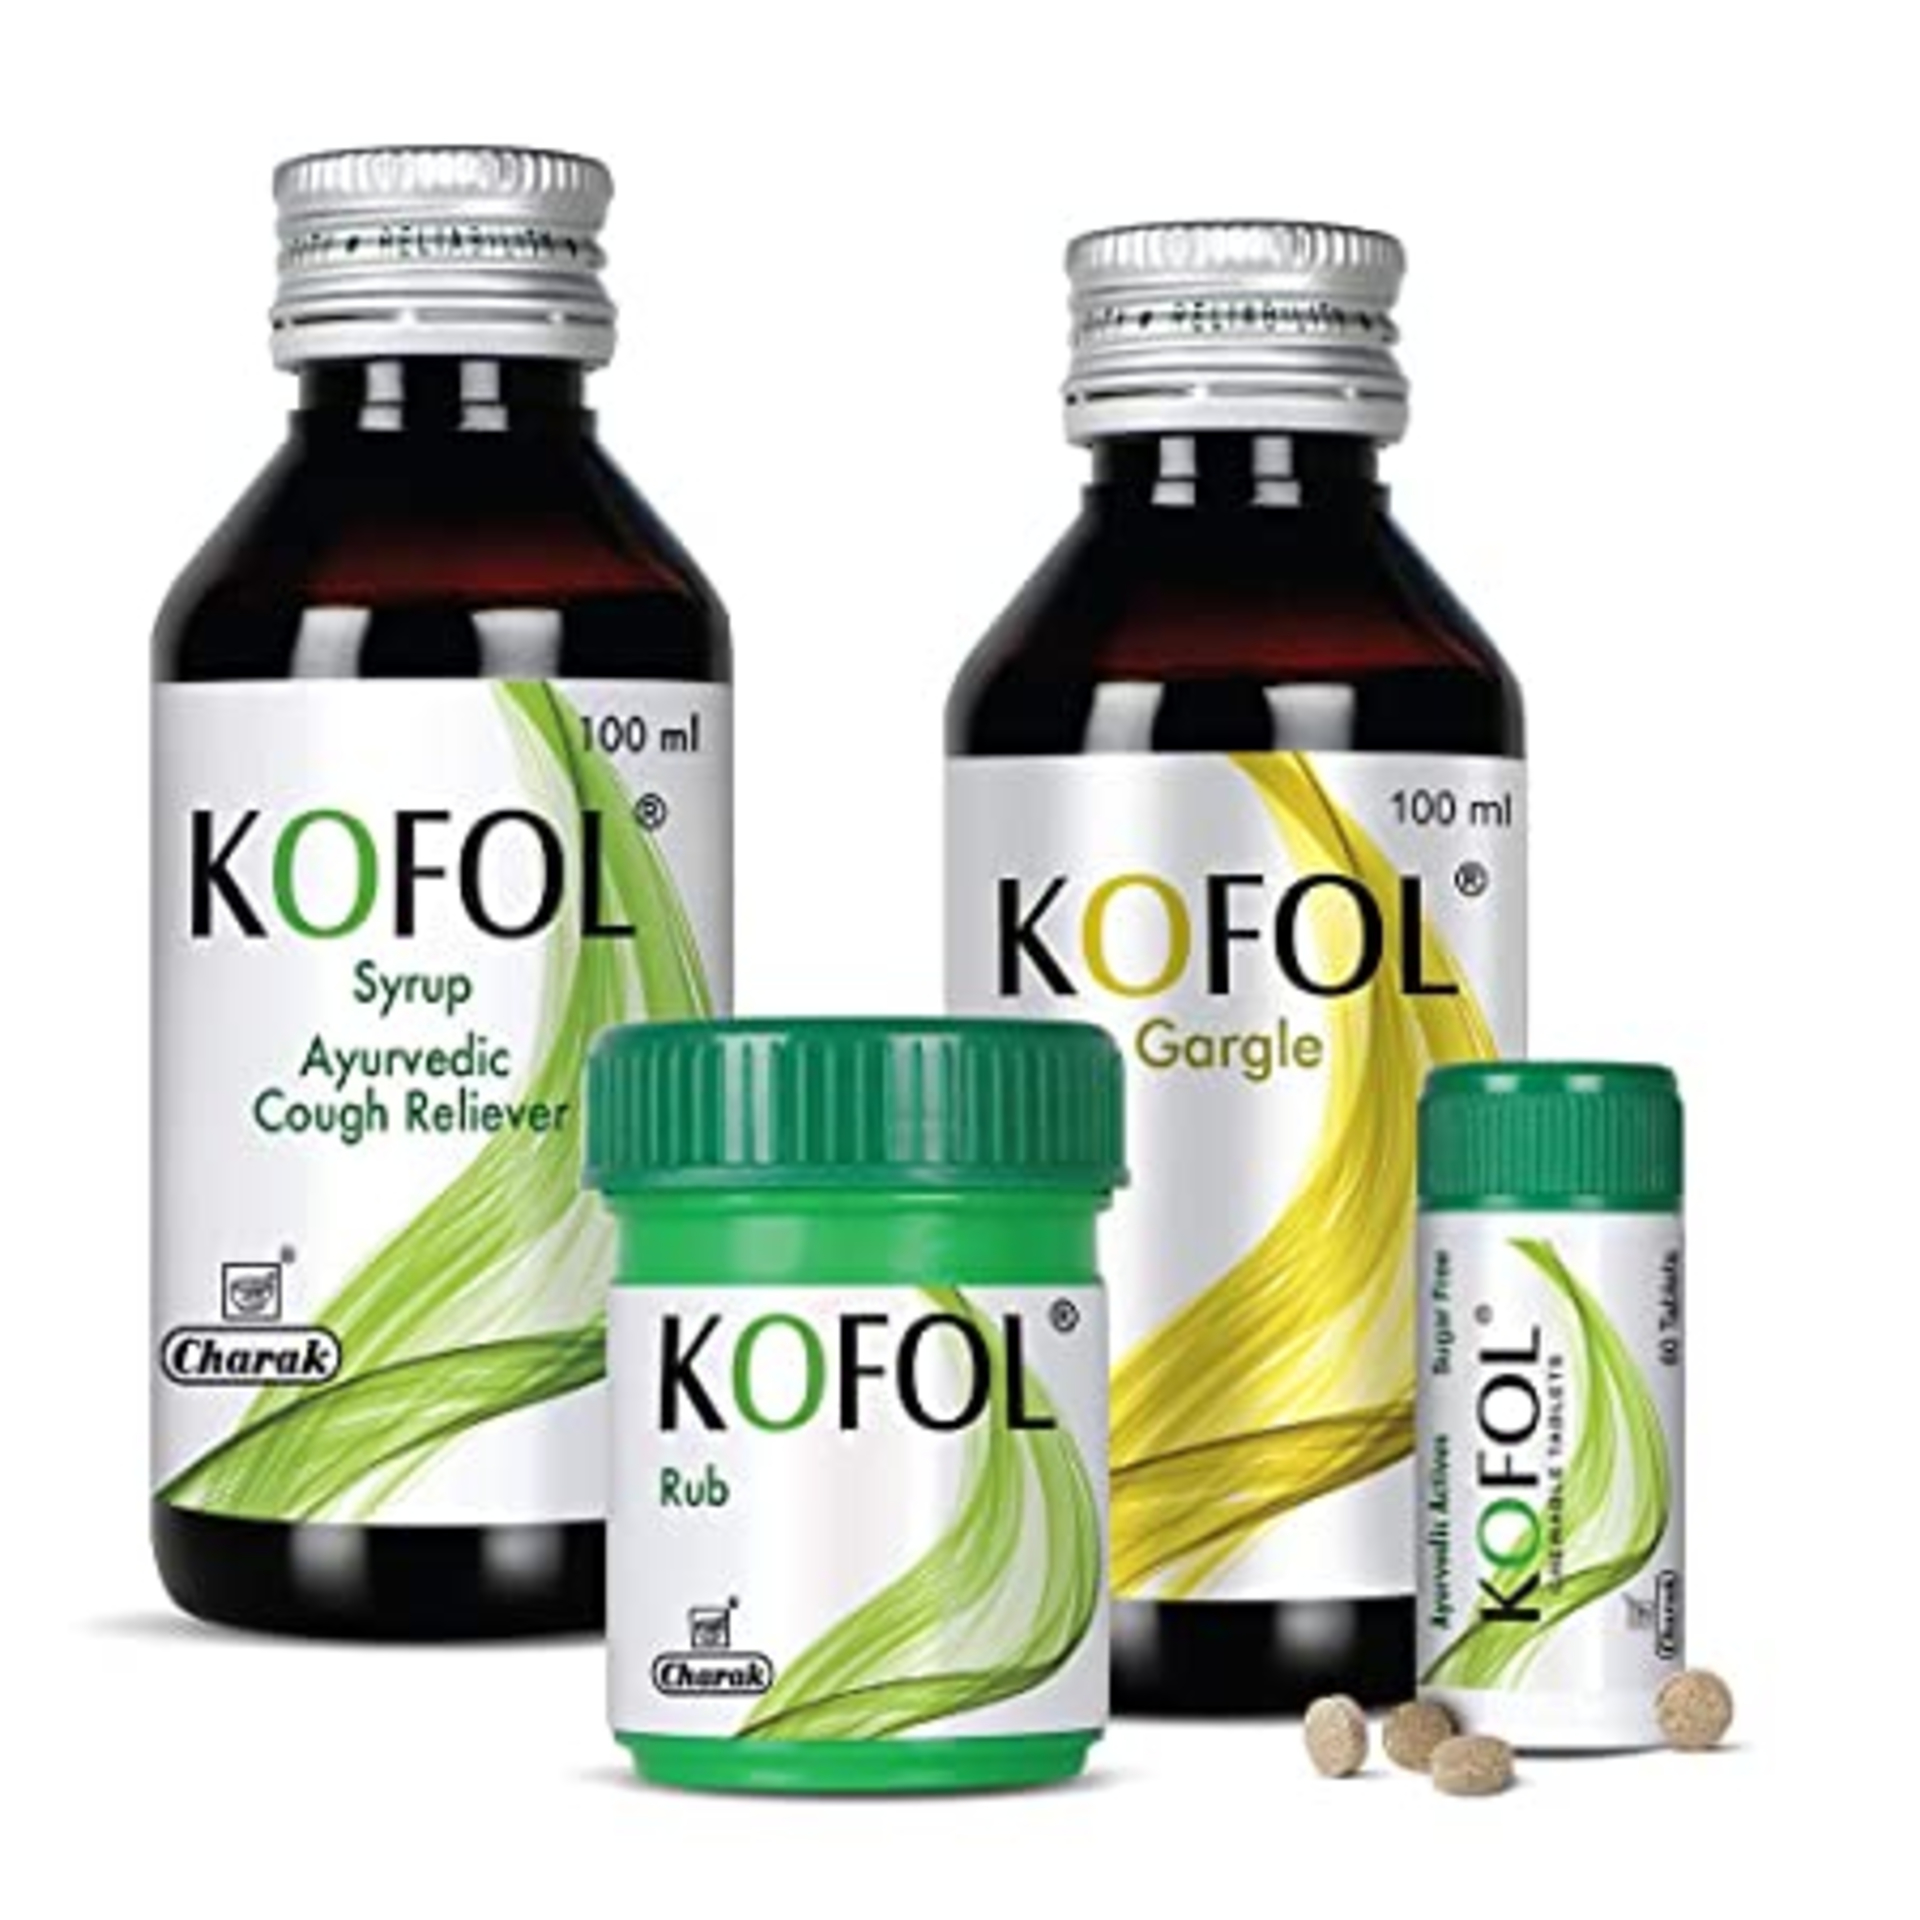 Kofol Products by Charak Pharma - REVIEW  image